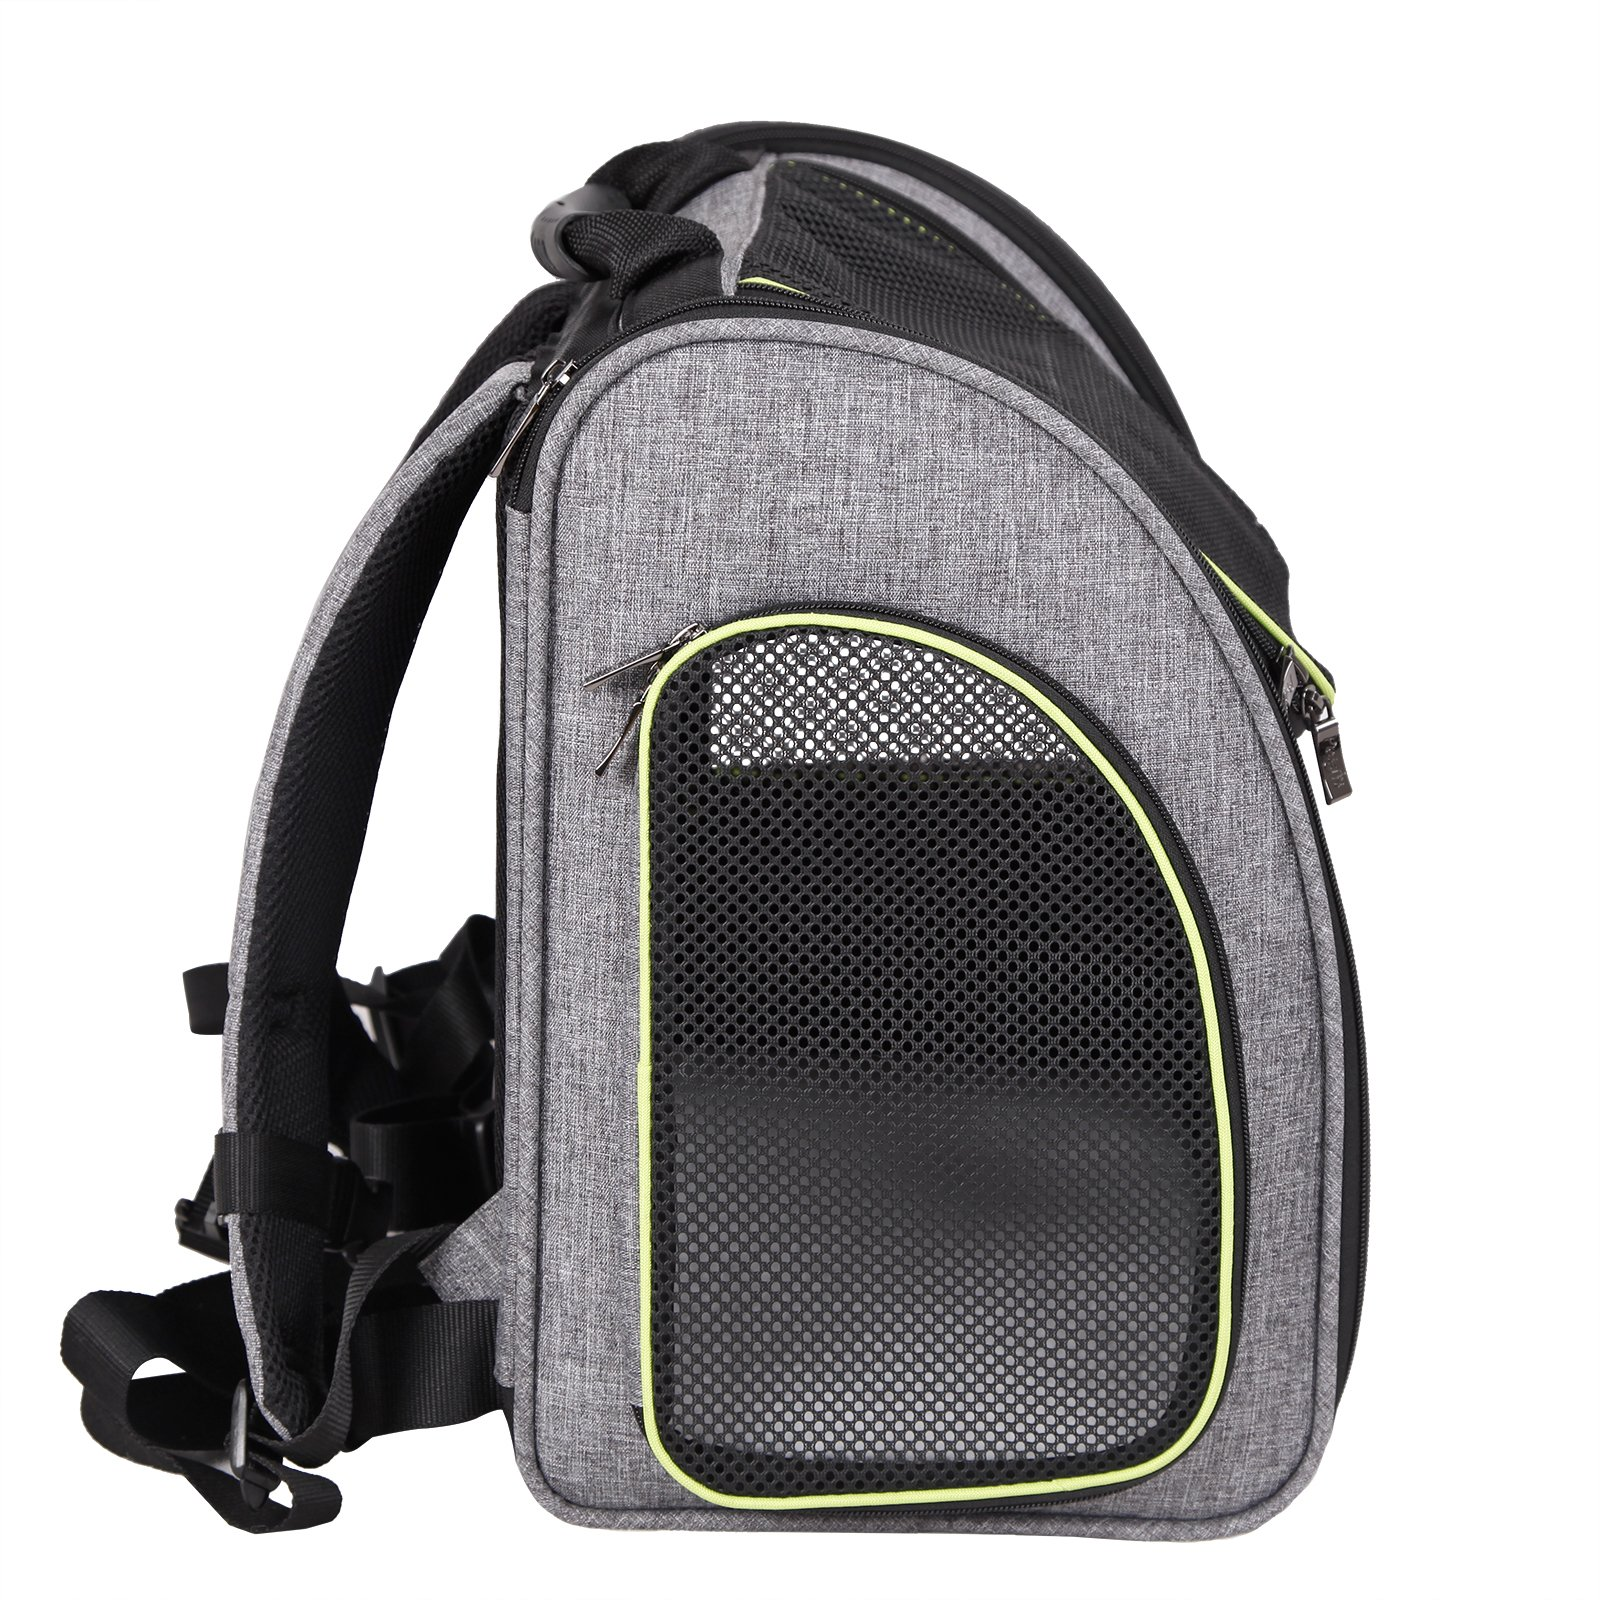 Petsfit Dogs Carriers Backpack for Cat/Dog/Guinea Pig/Bunny Durable and Comfortable Pet Bag by Petsfit (Image #3)